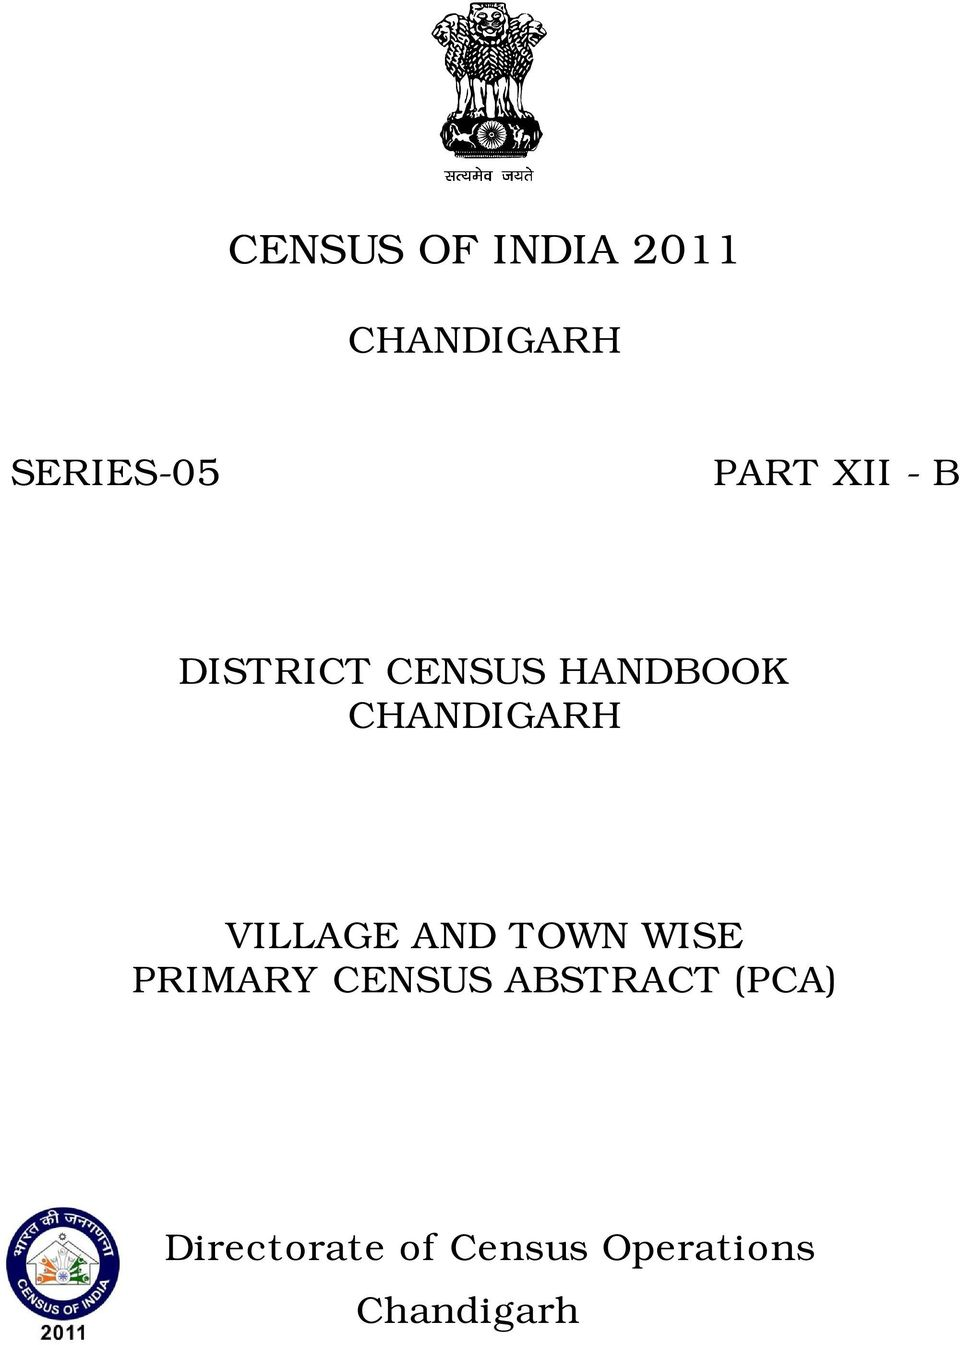 VILLAGE AND TOWN WISE PRIMARY CENSUS ABSTRACT